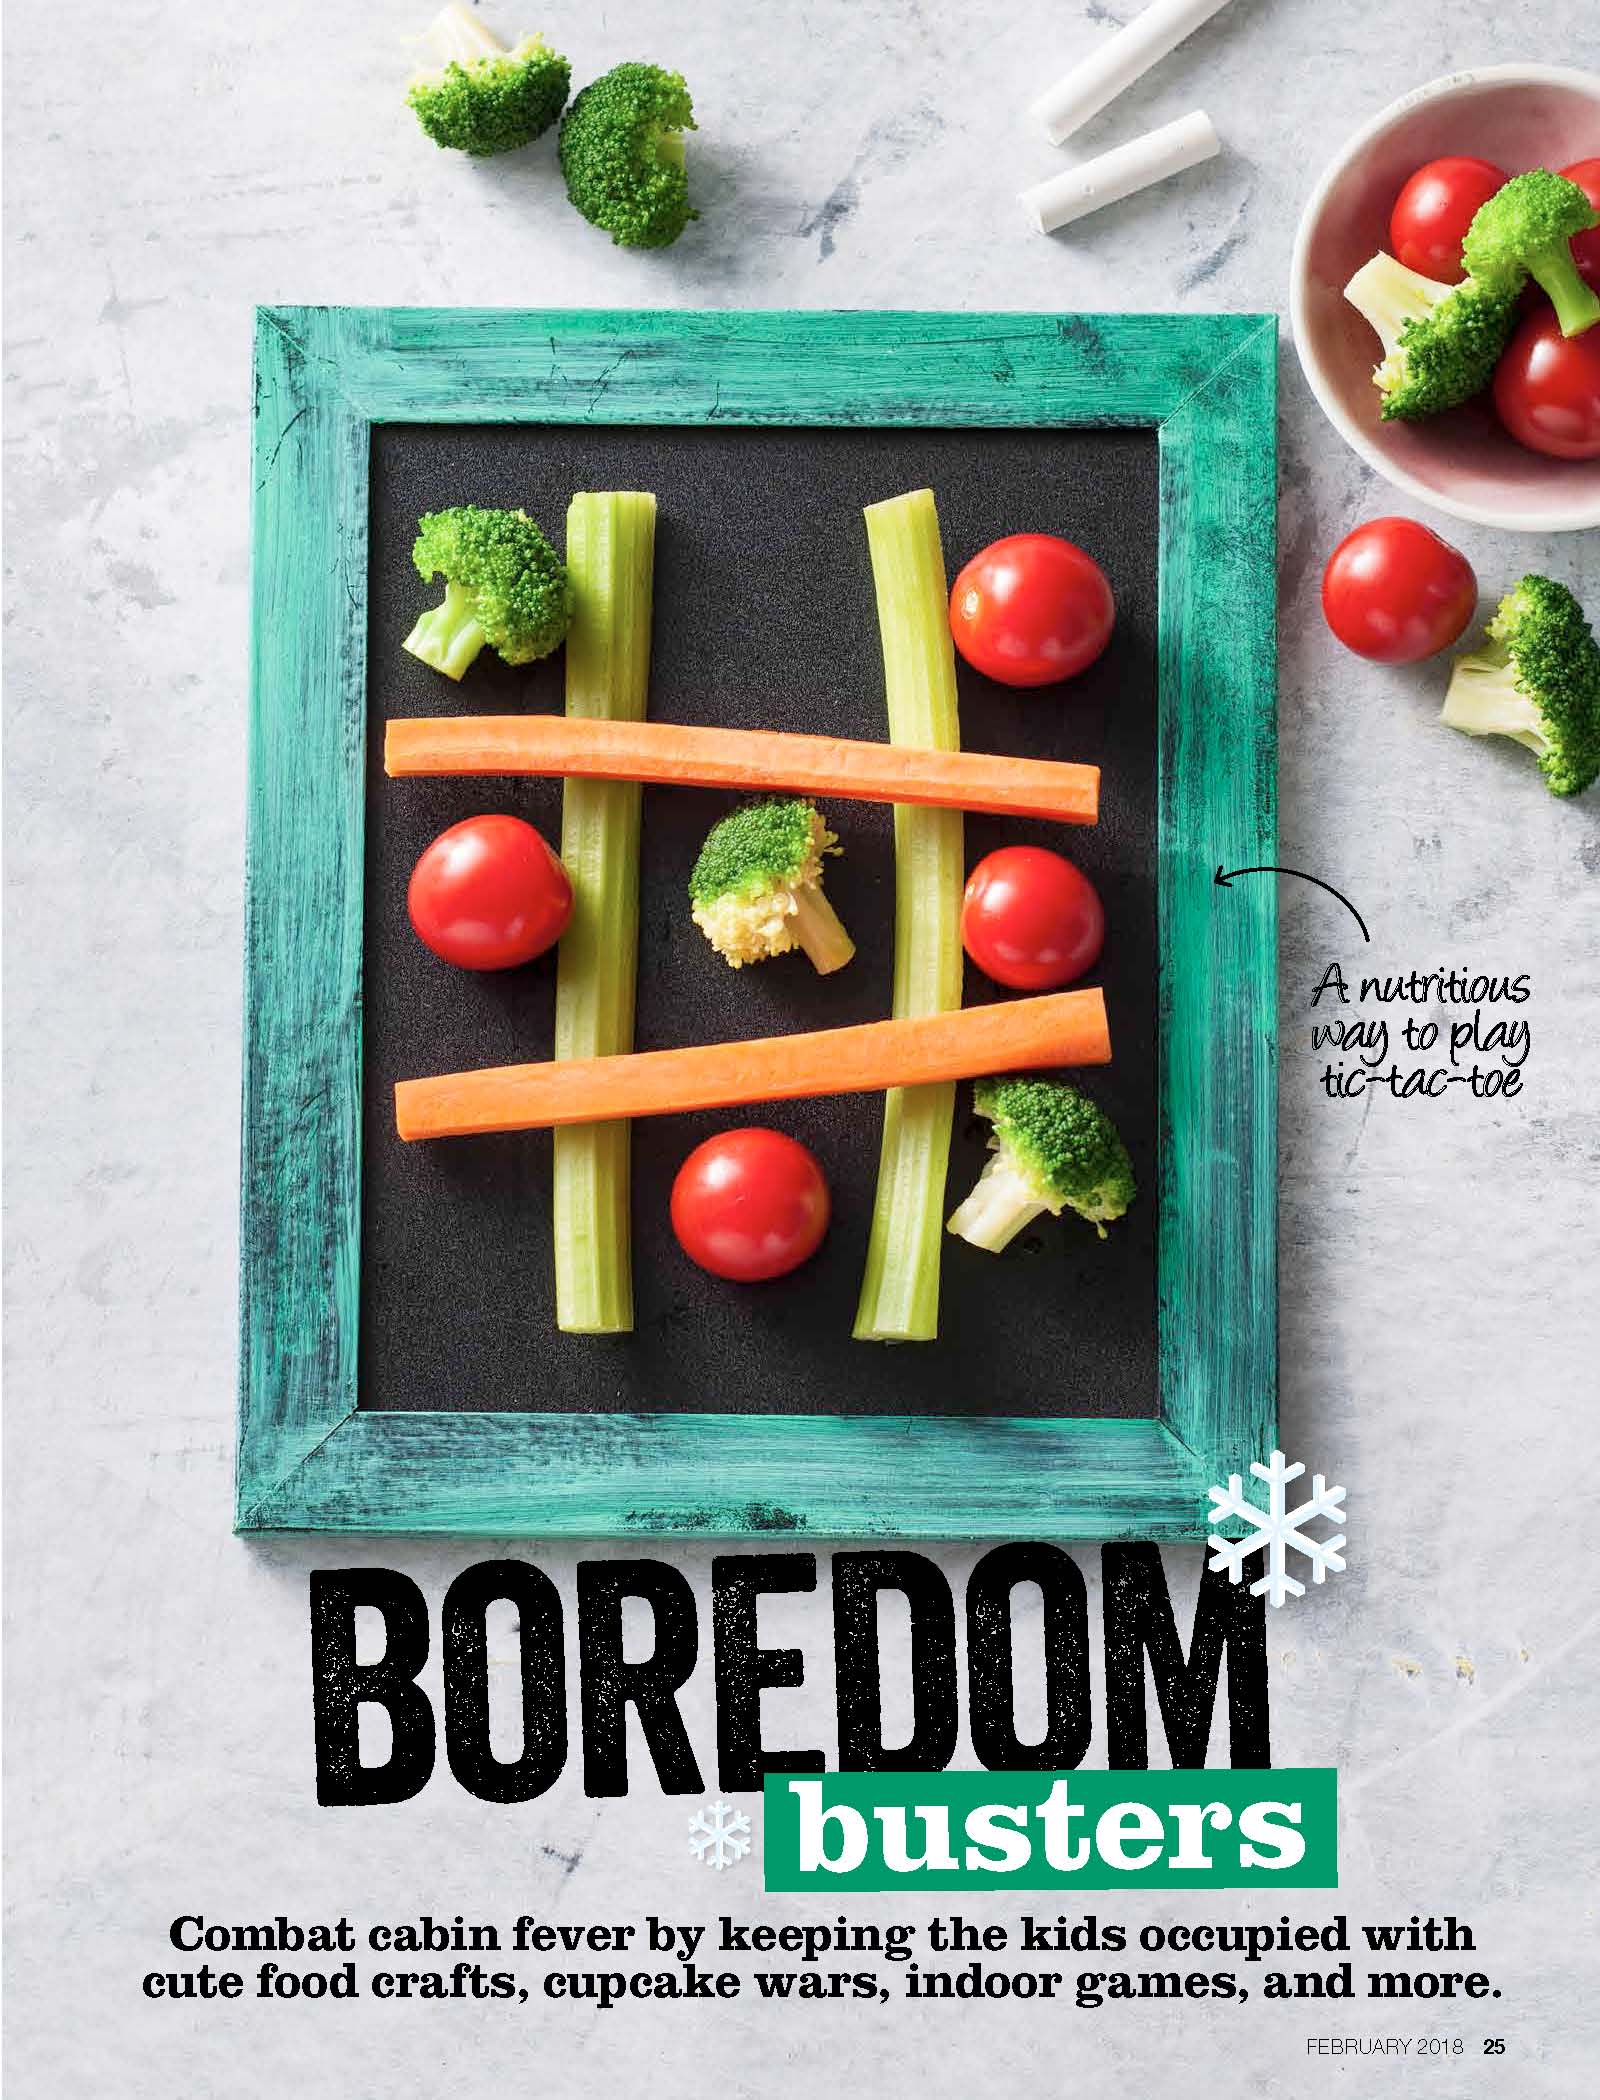 Savory Magazine Snow Day activity guide includes kitchen fun for families like edible tic tac toe | Cool Mom Eats (sponsored)